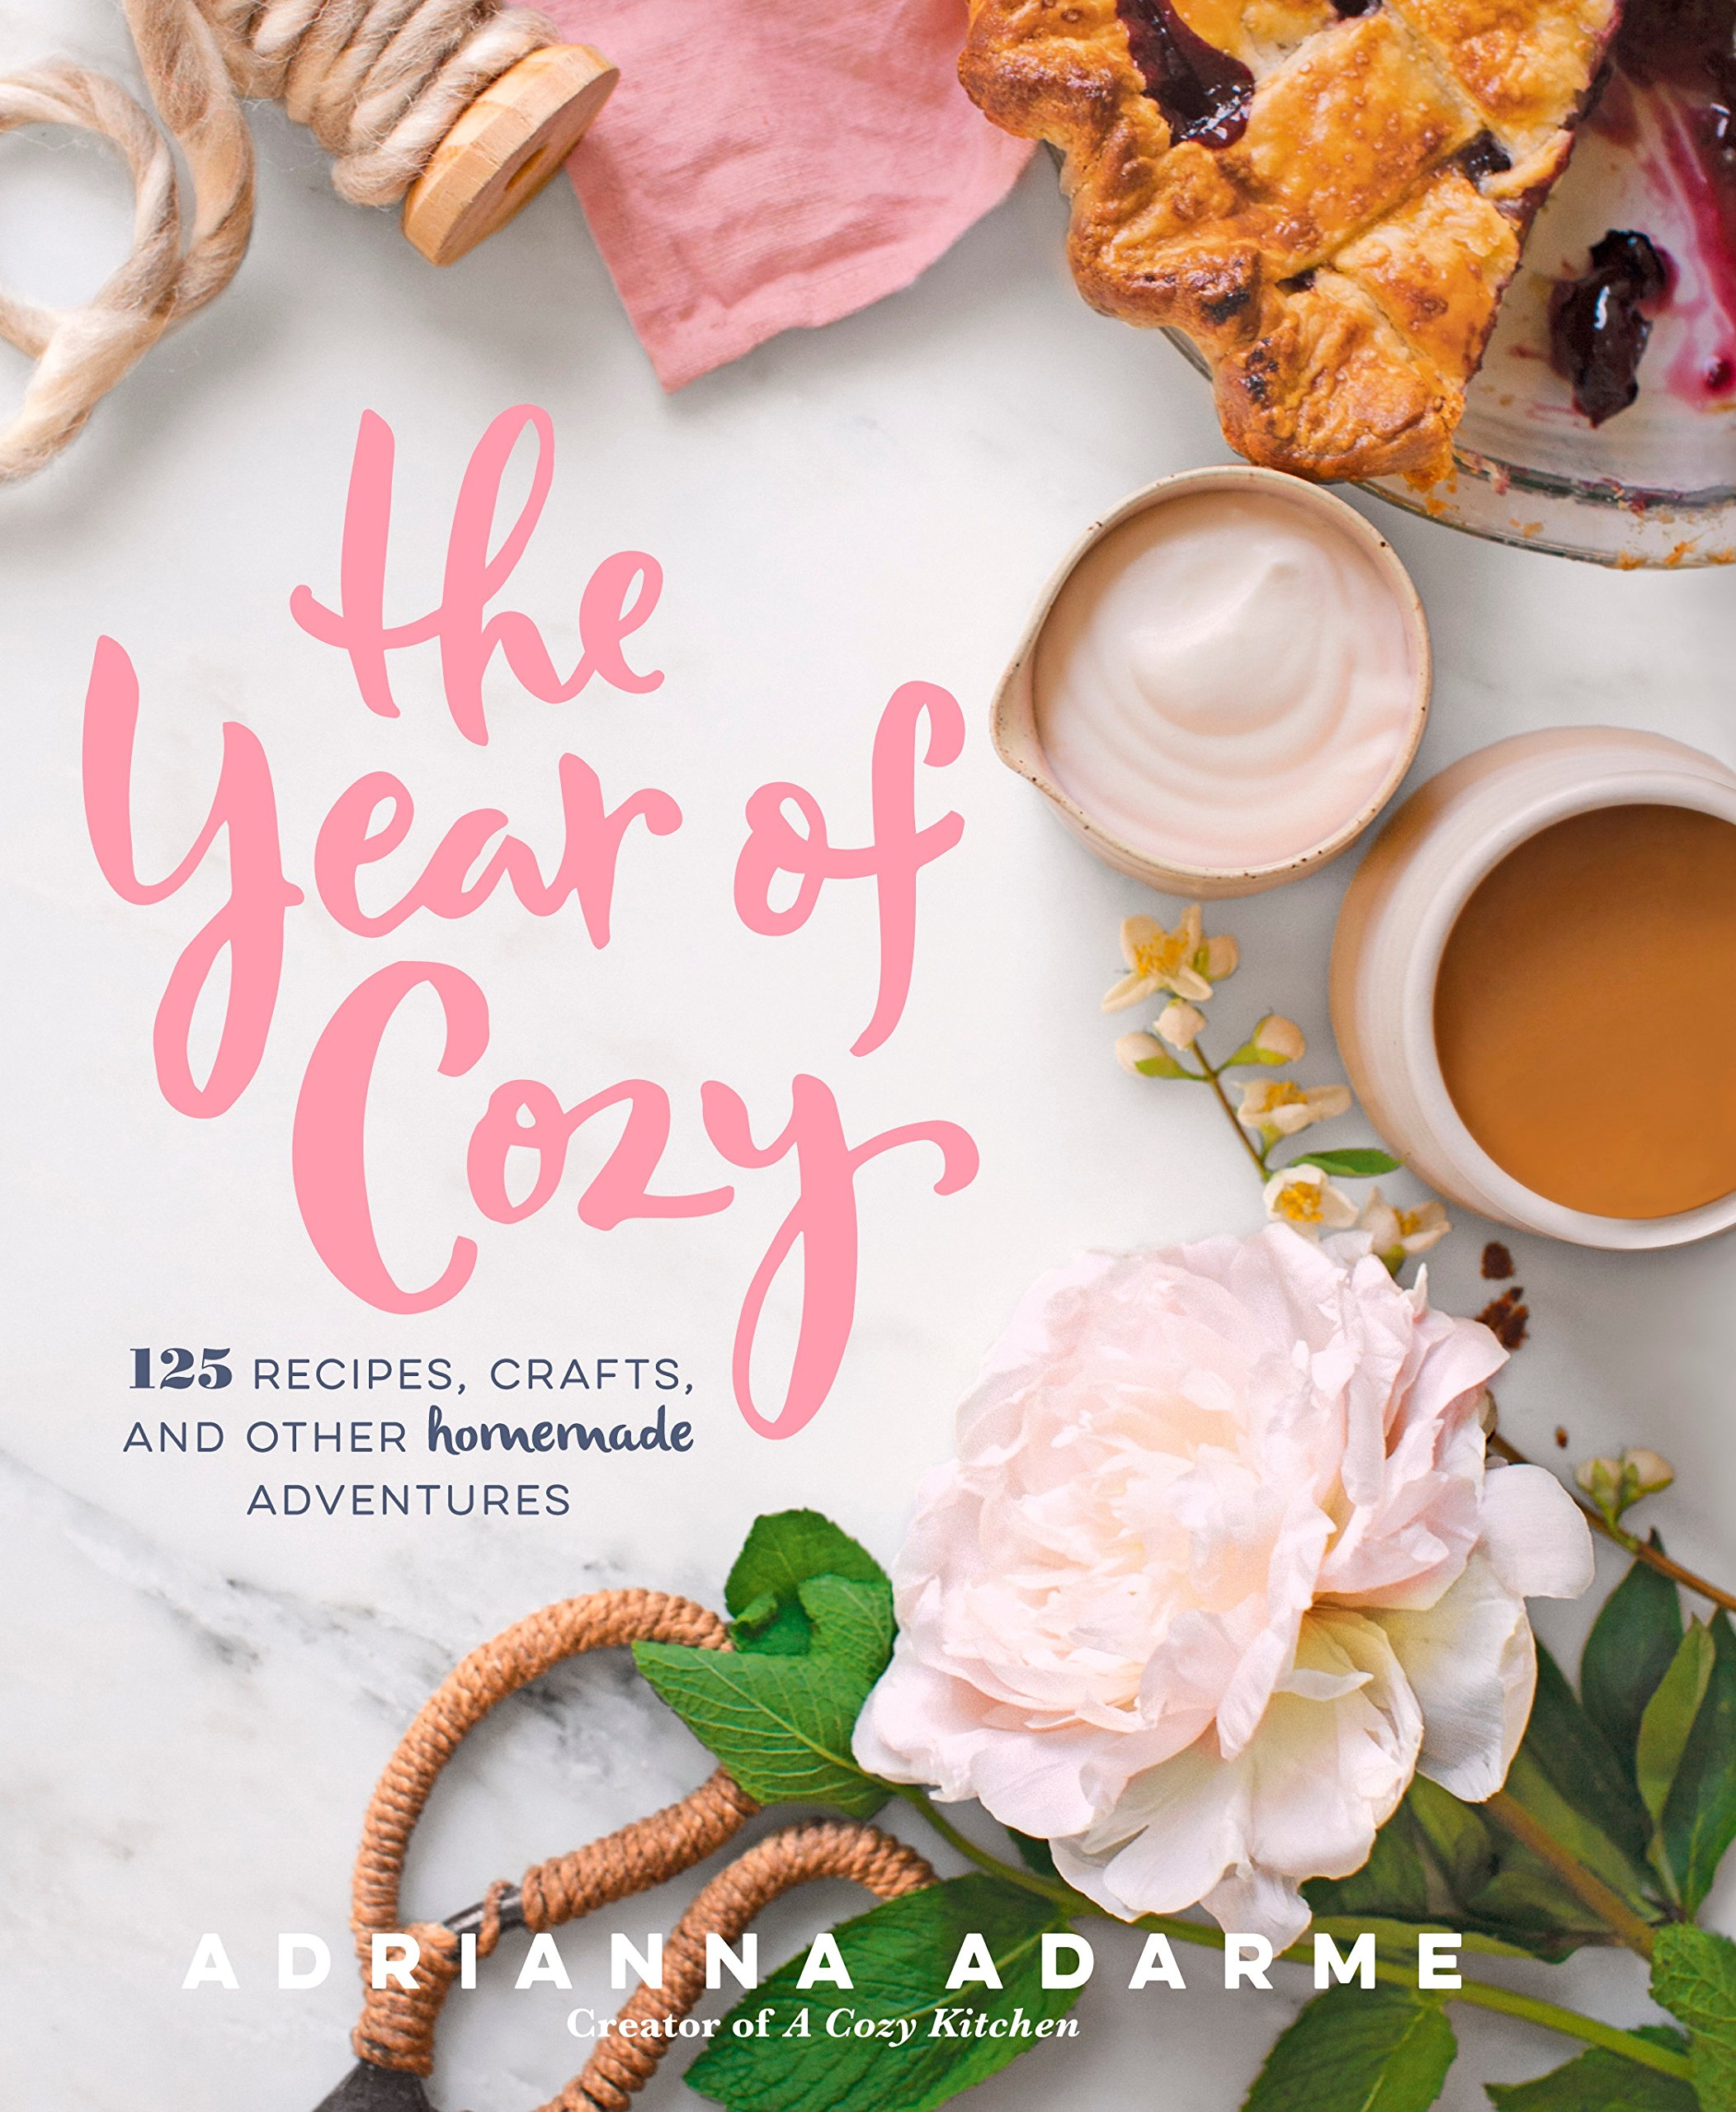 Year Cozy Recipes Homemade Adventures product image